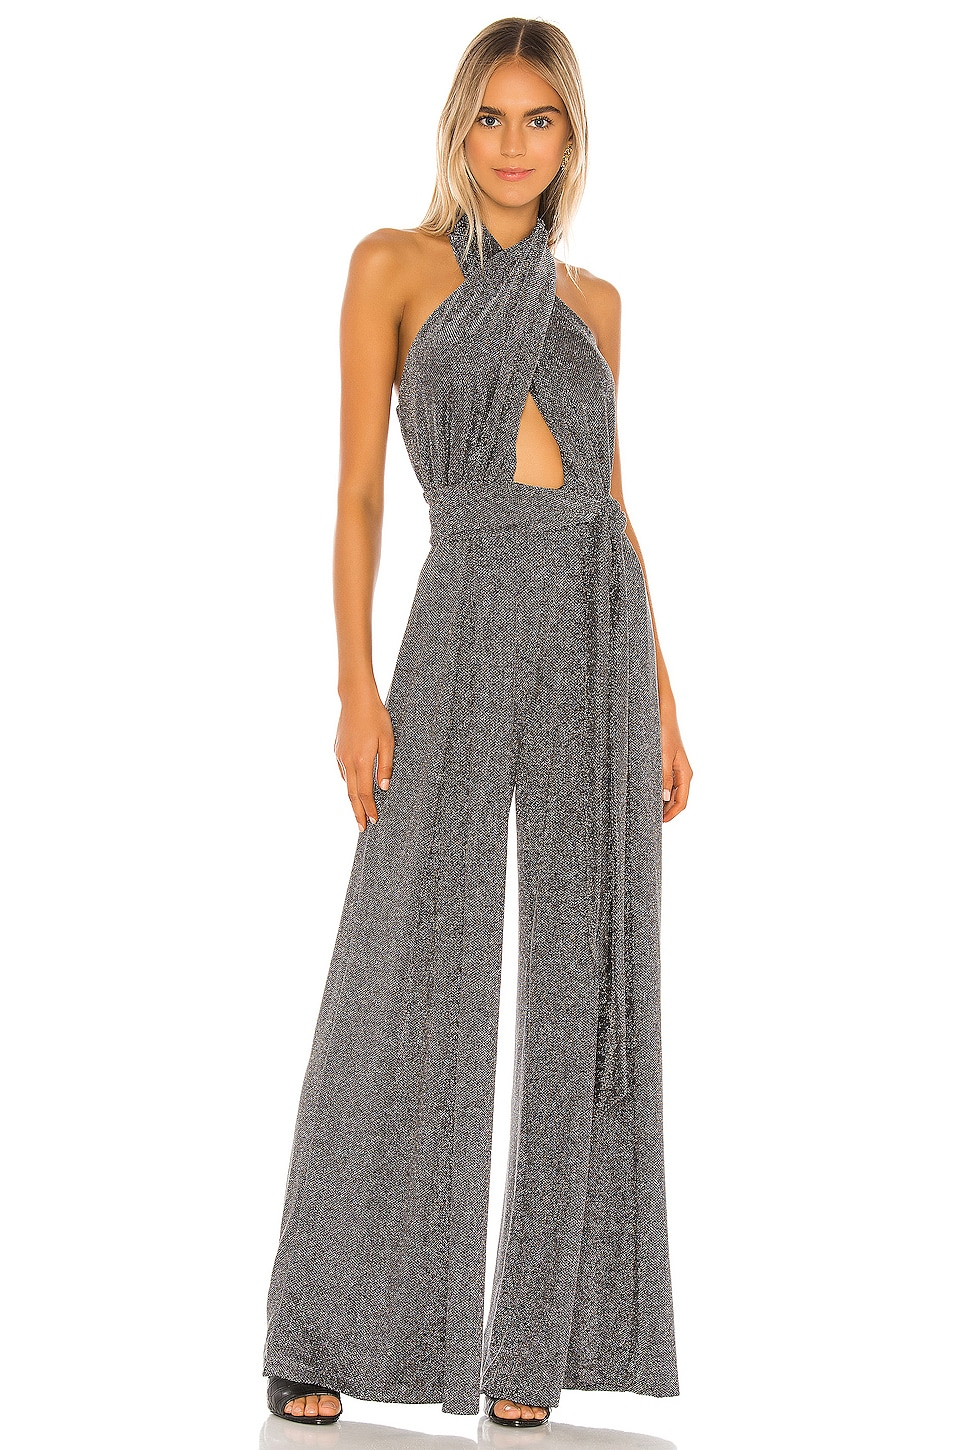 PatBO X REVOLVE Metallic Mesh Jumpsuit in Pewter